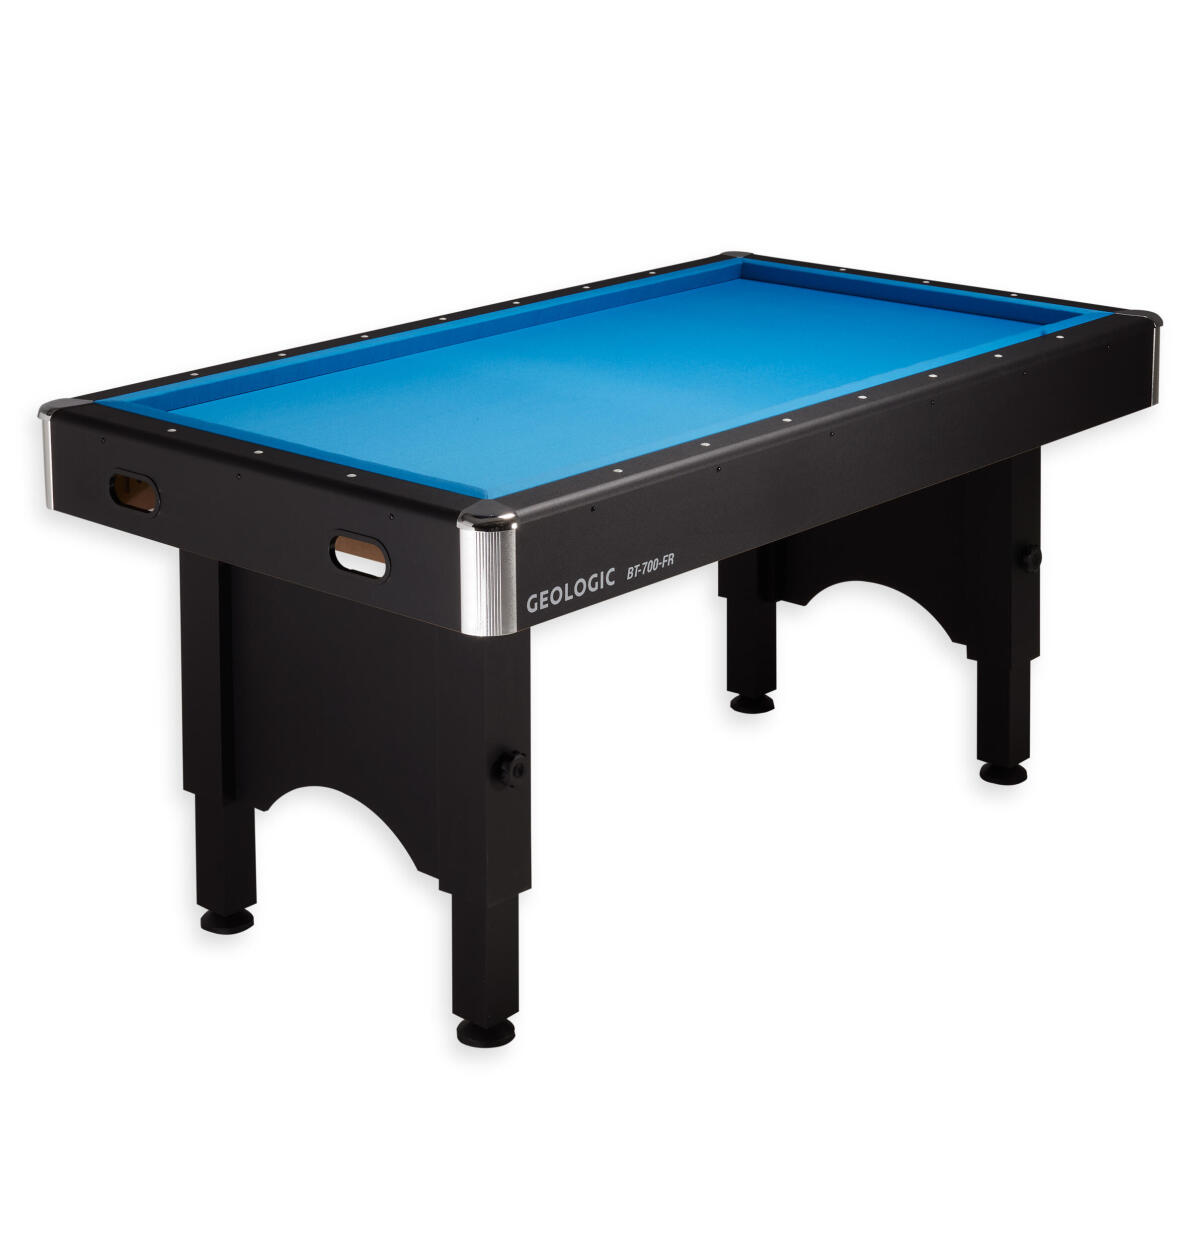 Table de billard BT 700 FR Decathlon